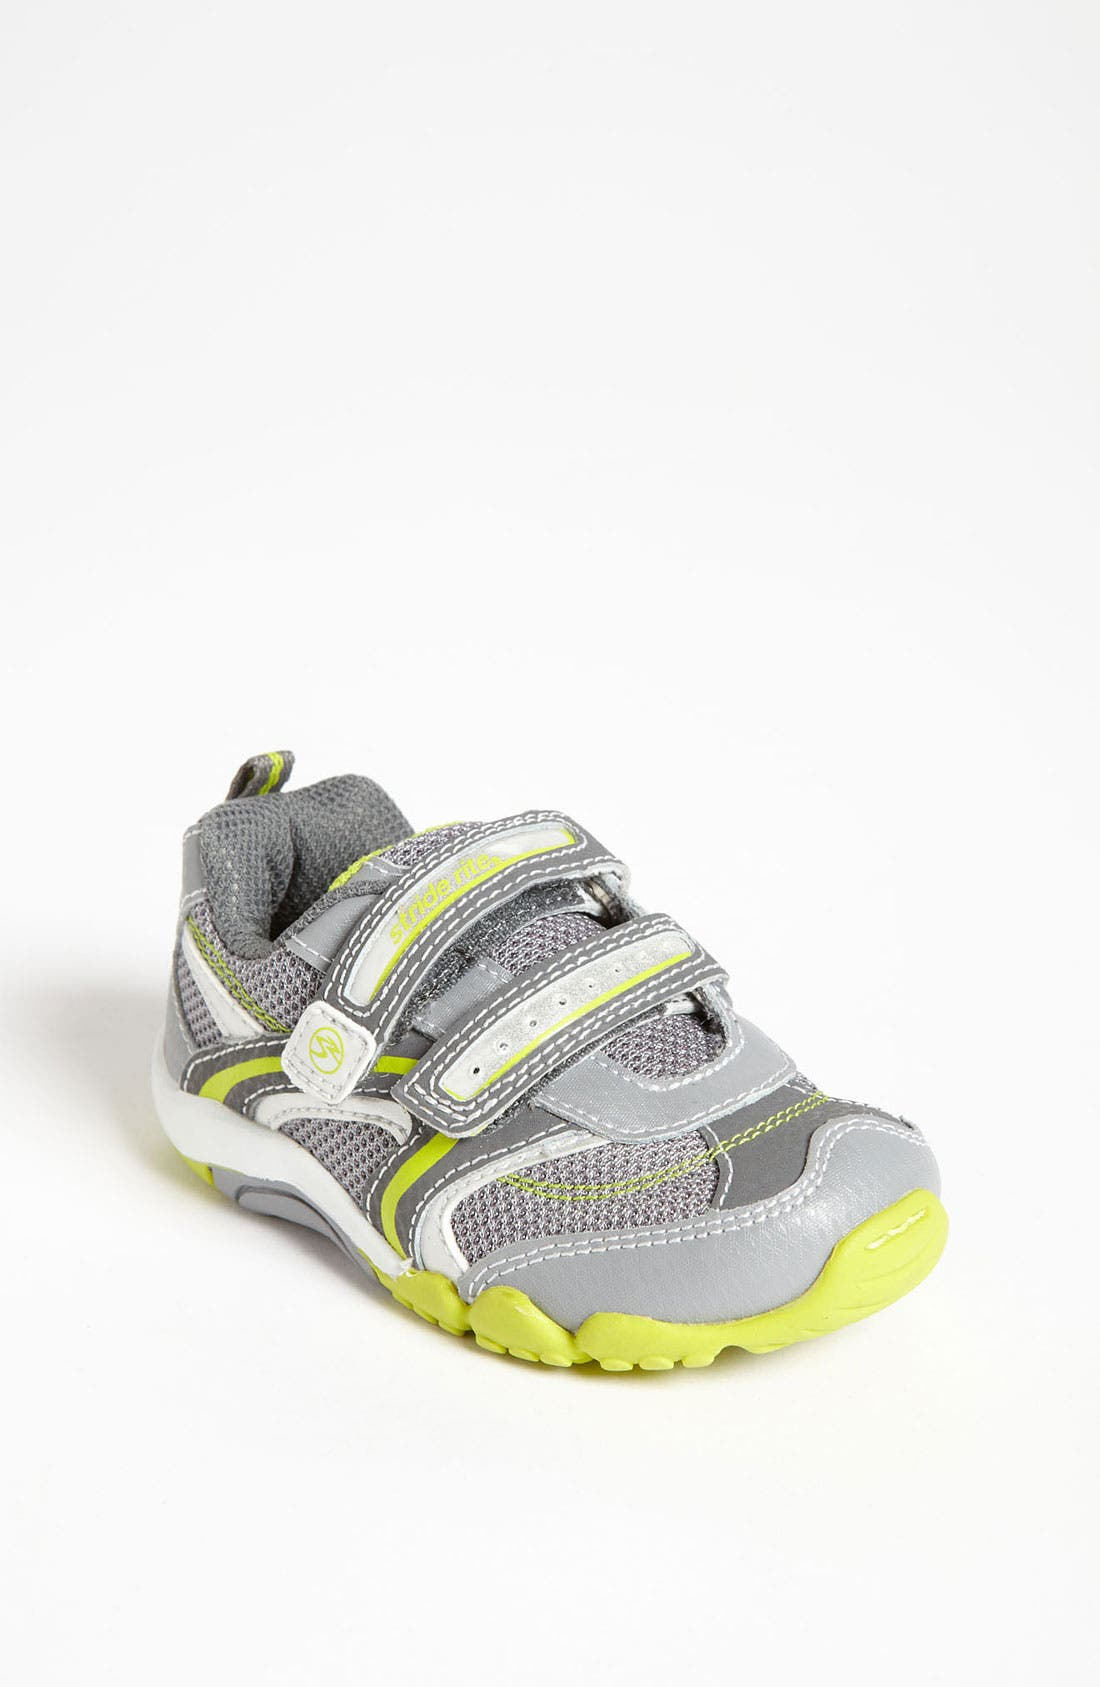 Main Image - Stride Rite 'Falcon' Sneaker (Baby, Walker & Toddler)